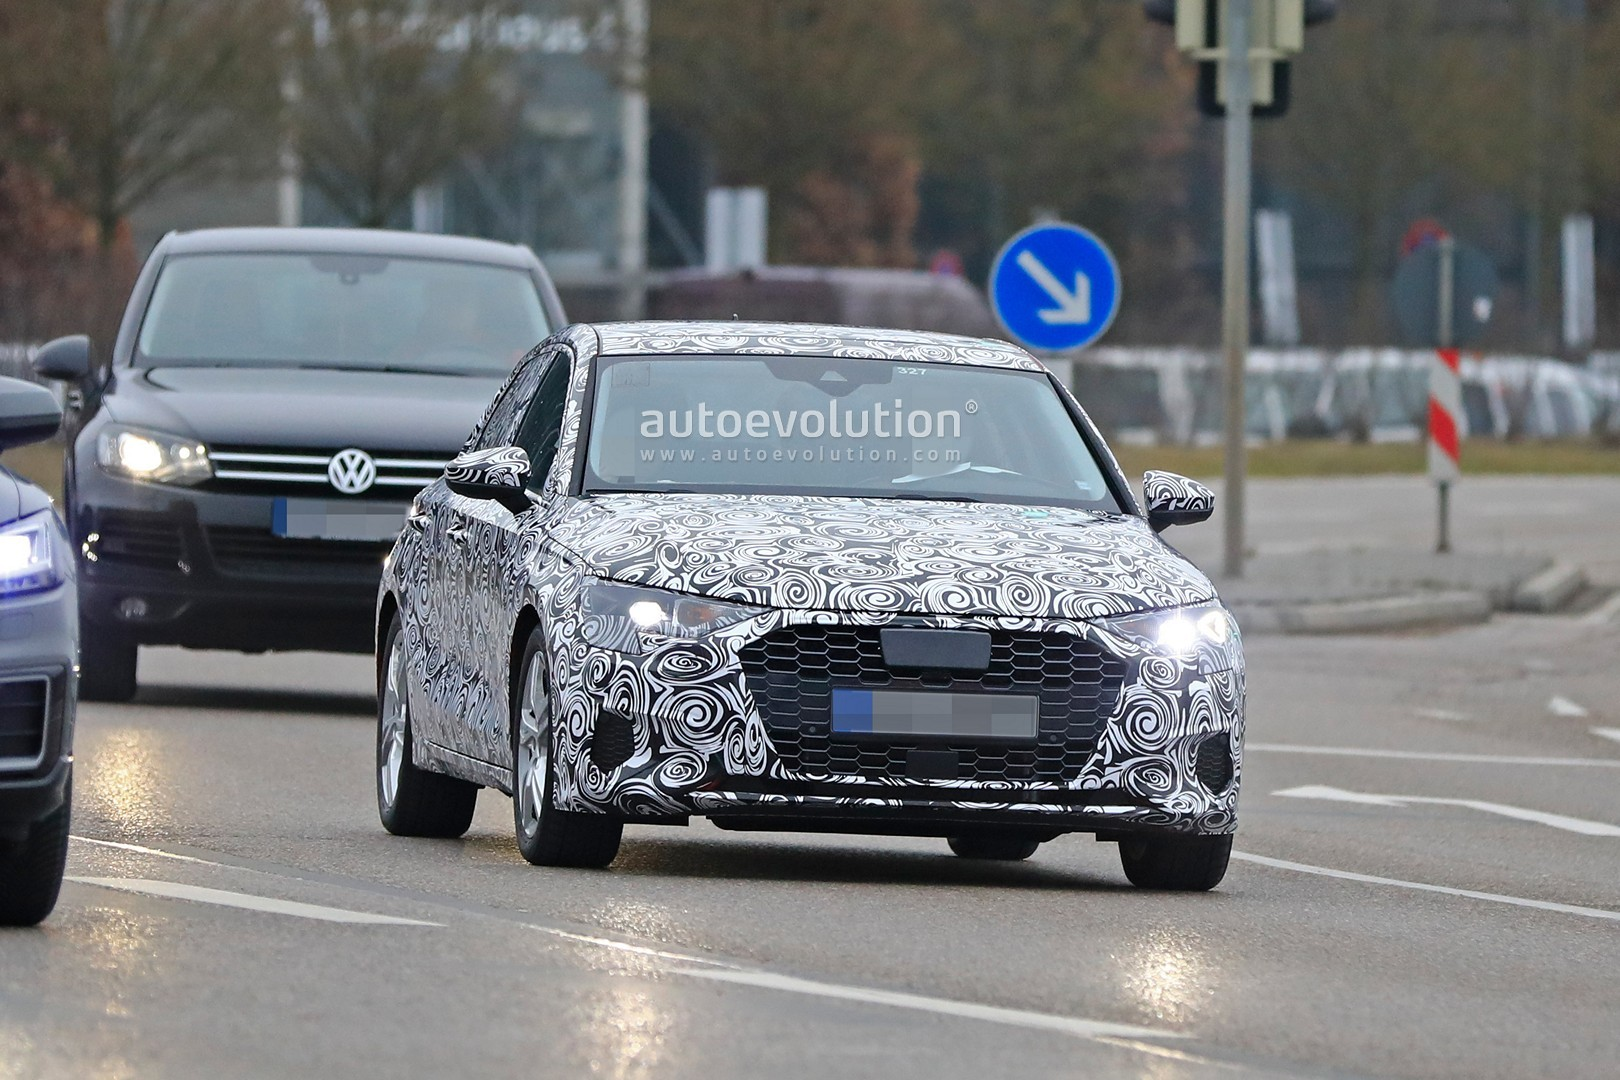 [Imagen: 2020-audi-a3-spied-in-detail-on-the-road...tion_7.jpg]